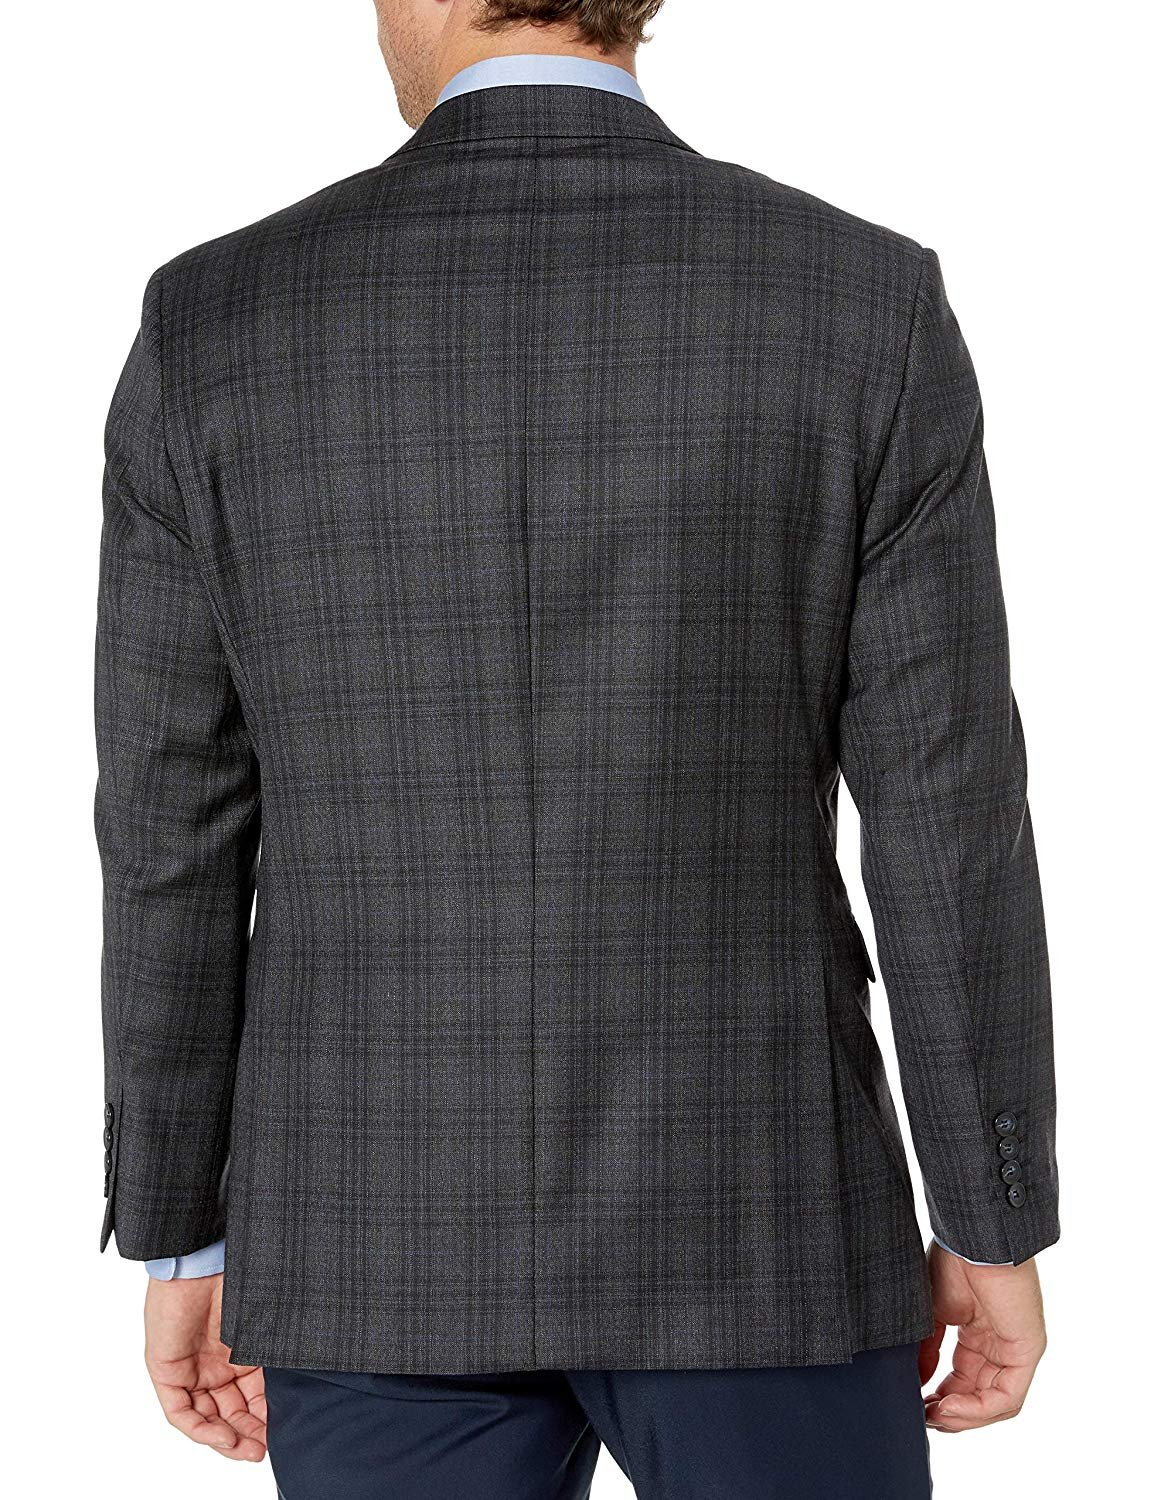 Adam Baker Mens Single Breasted 100/% Wool Ultra Slim Fit Blazer//Sport Coat Many Styles and Colors